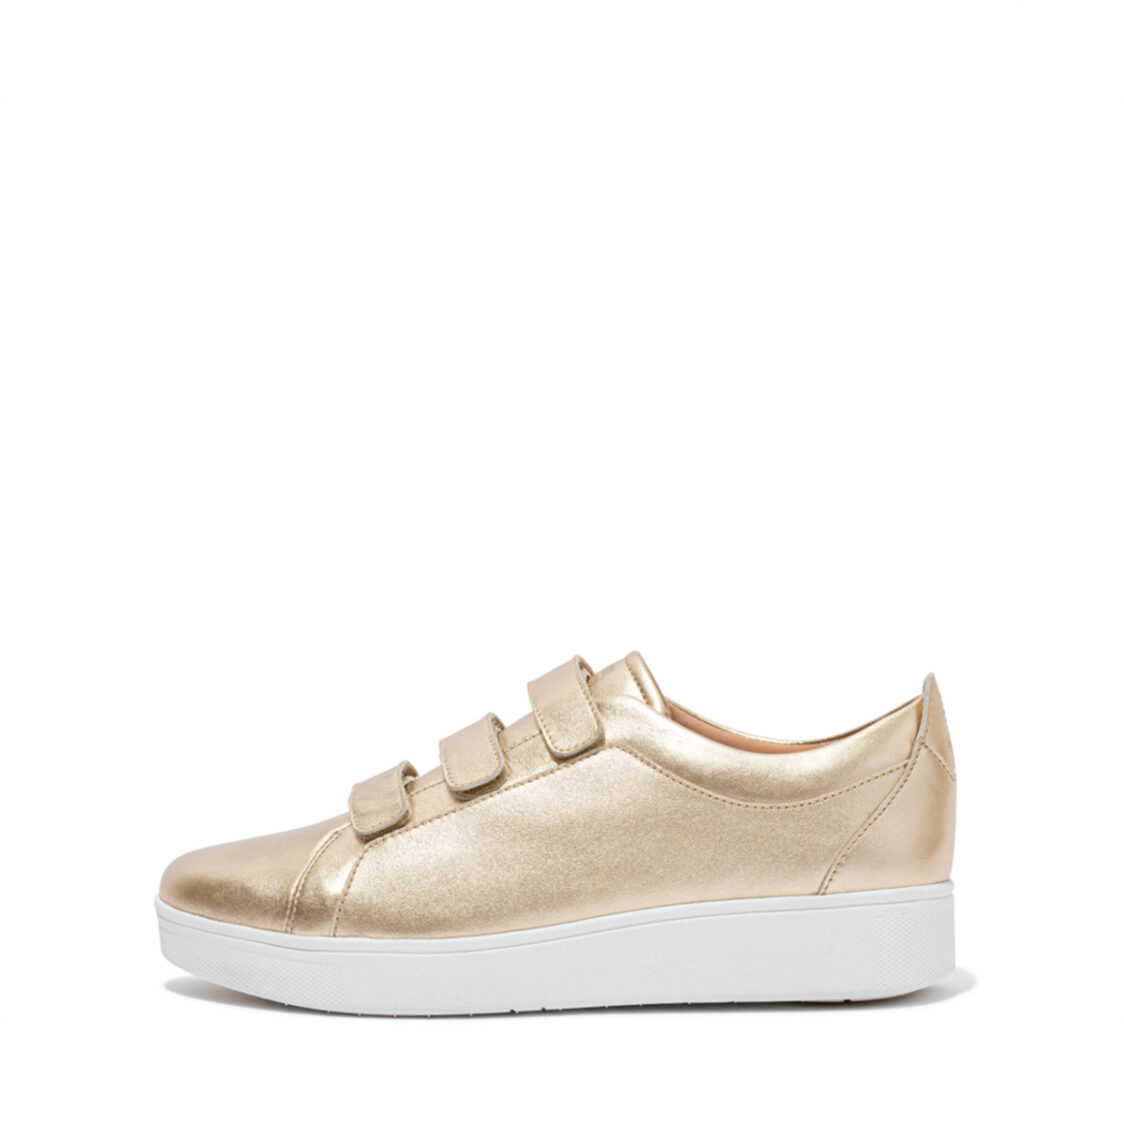 Fitflop Rally Quick Stick Fastening Leather Sneakers Platino EL8-675